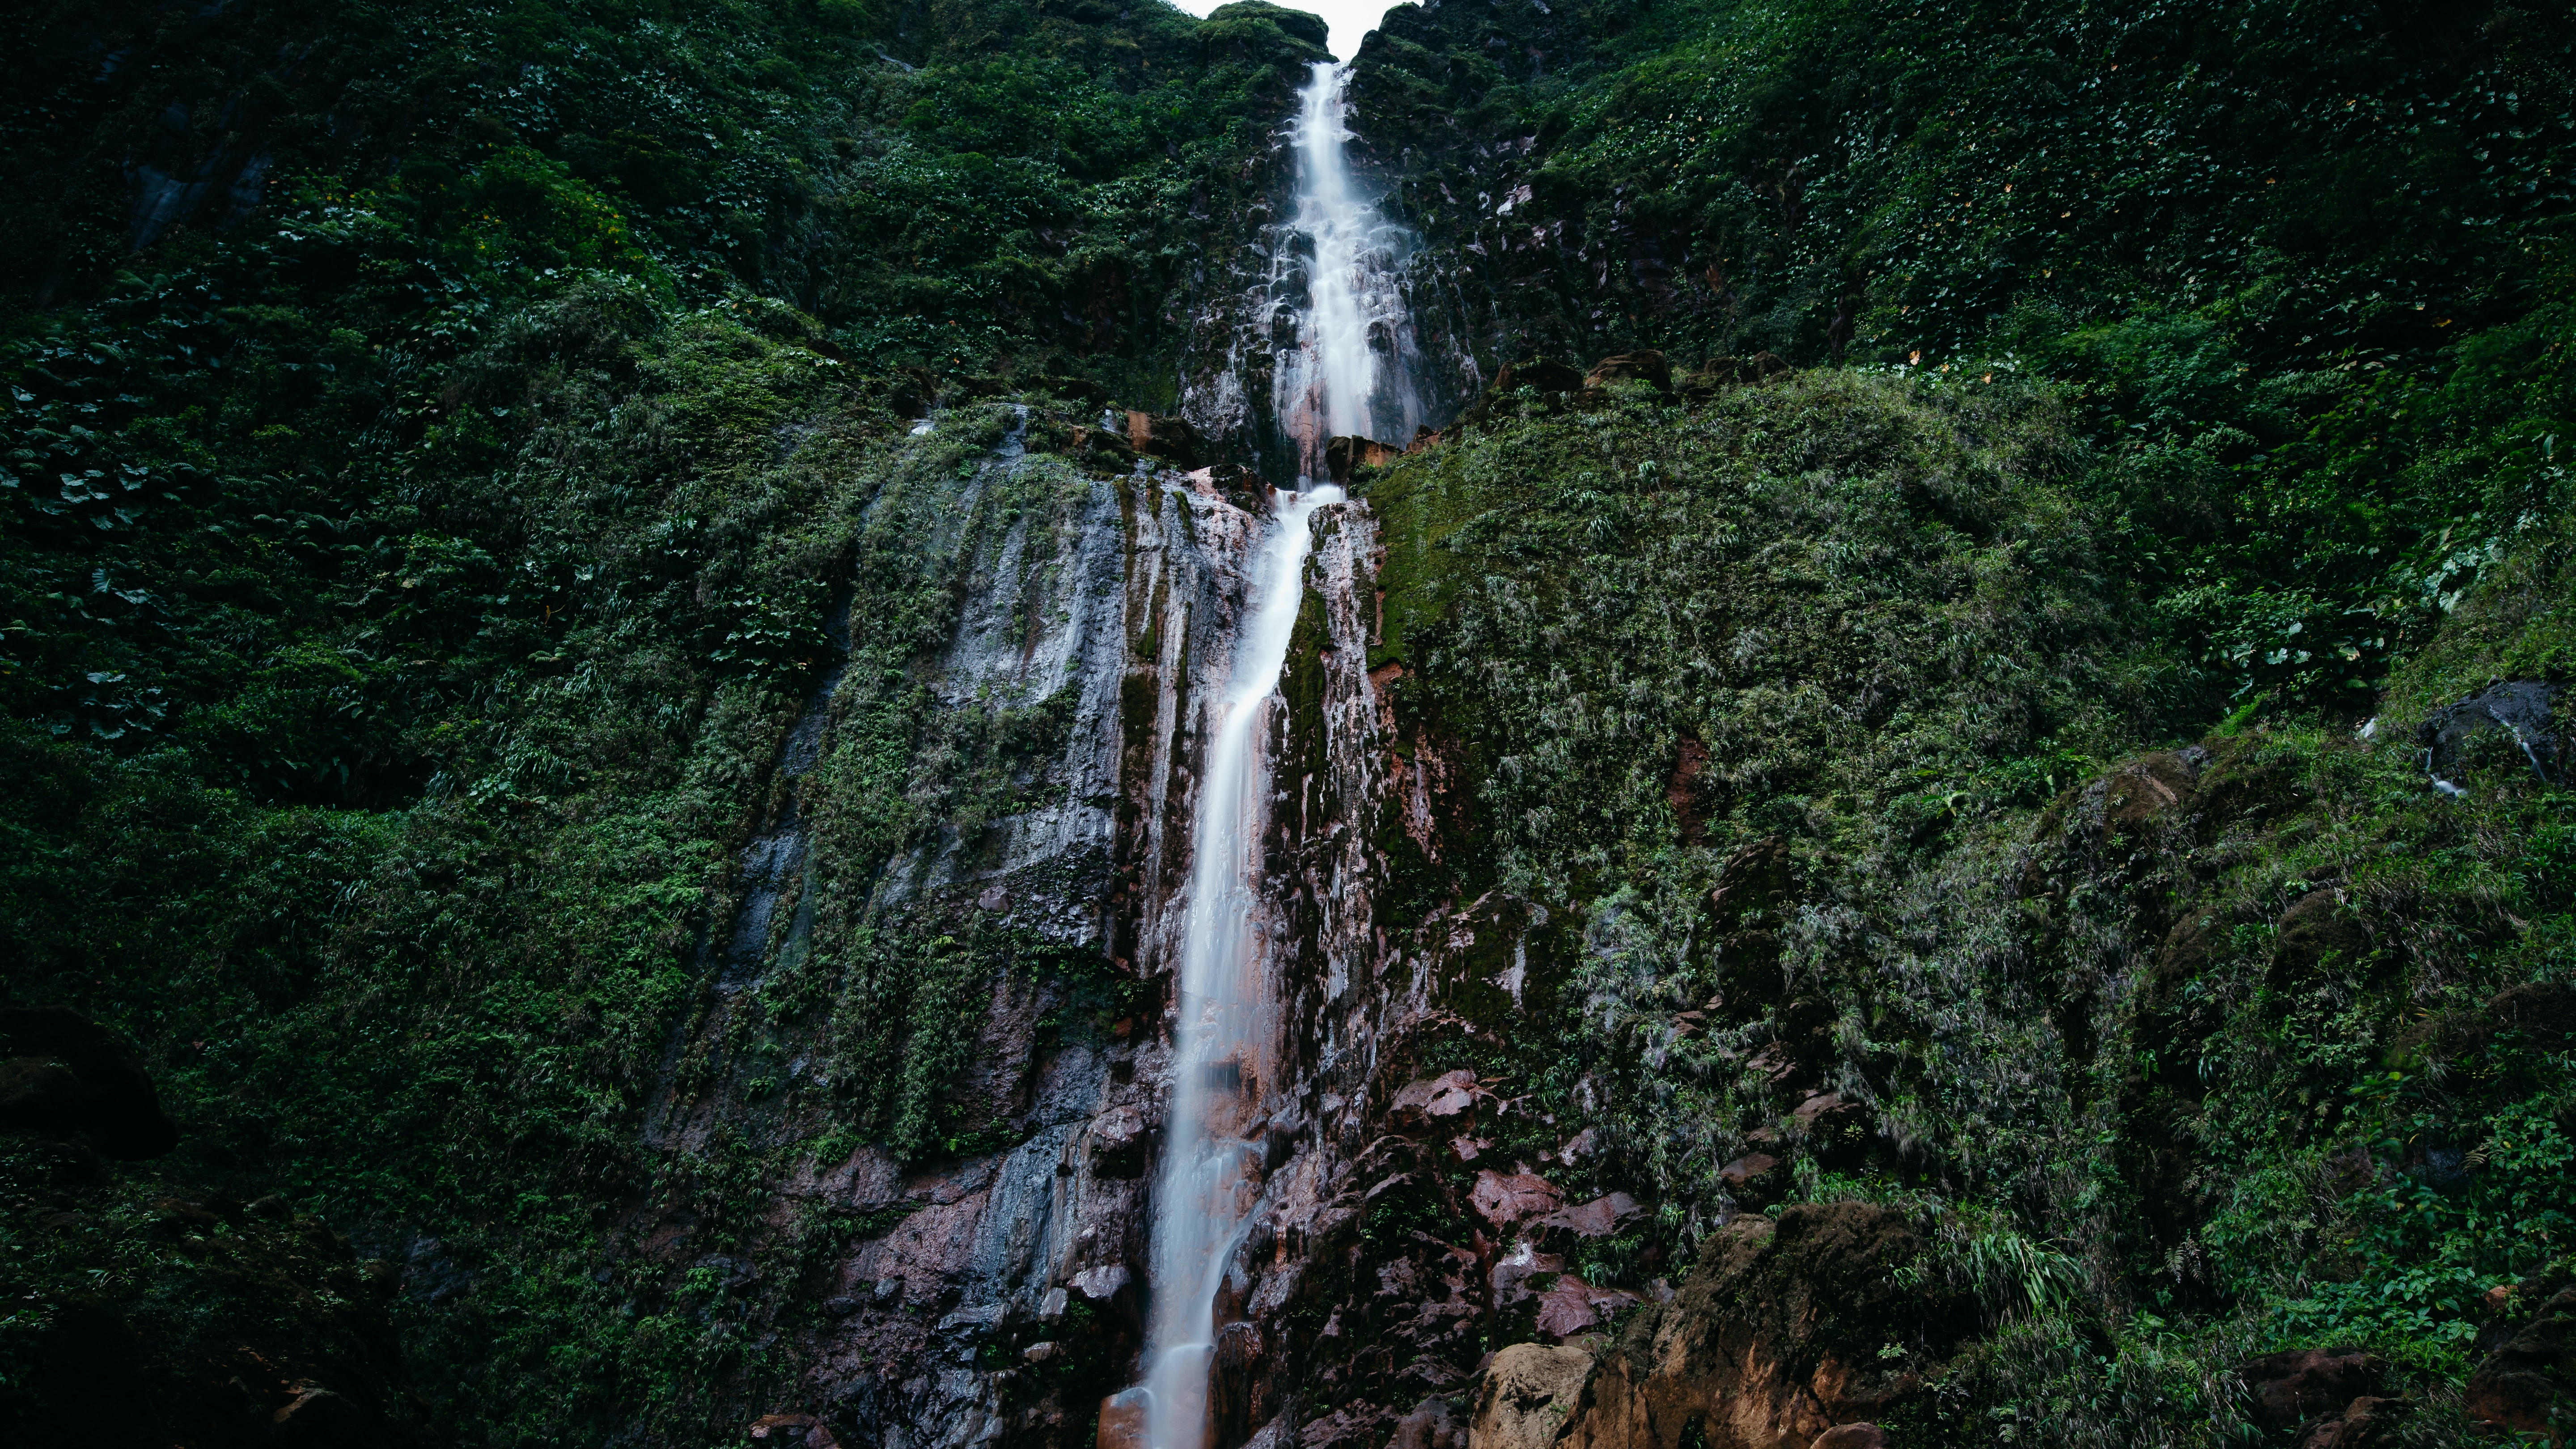 A tall waterfall flowing down a tall rock face covered in green vegetation